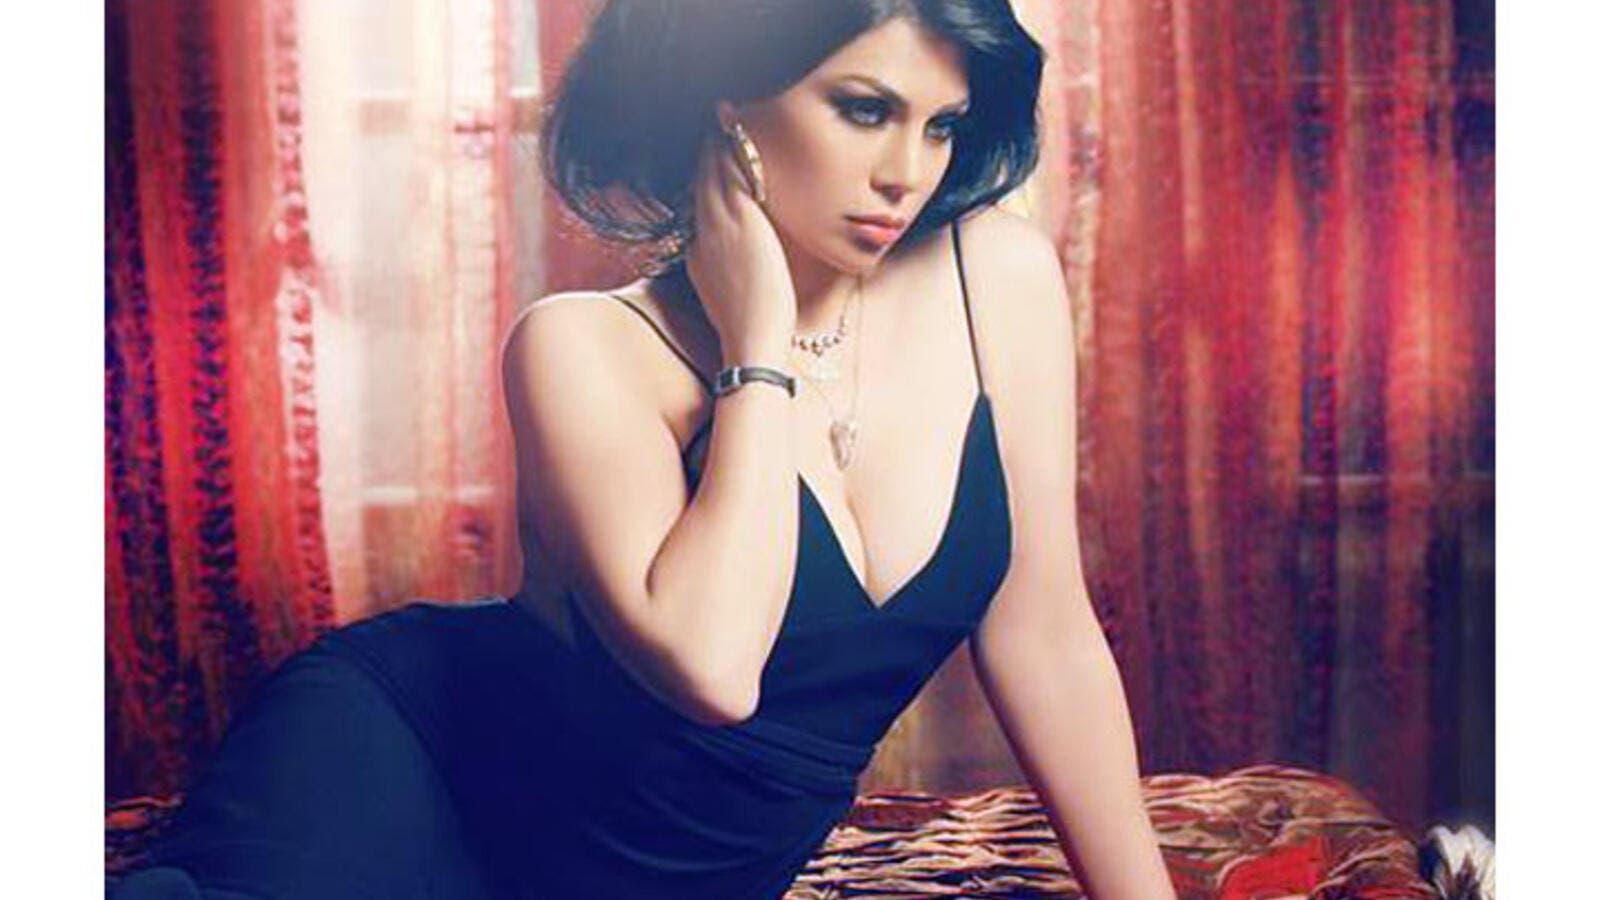 Haifa Wehbe picks and chooses which topics to discuss in interviews. (Image: Facebook)